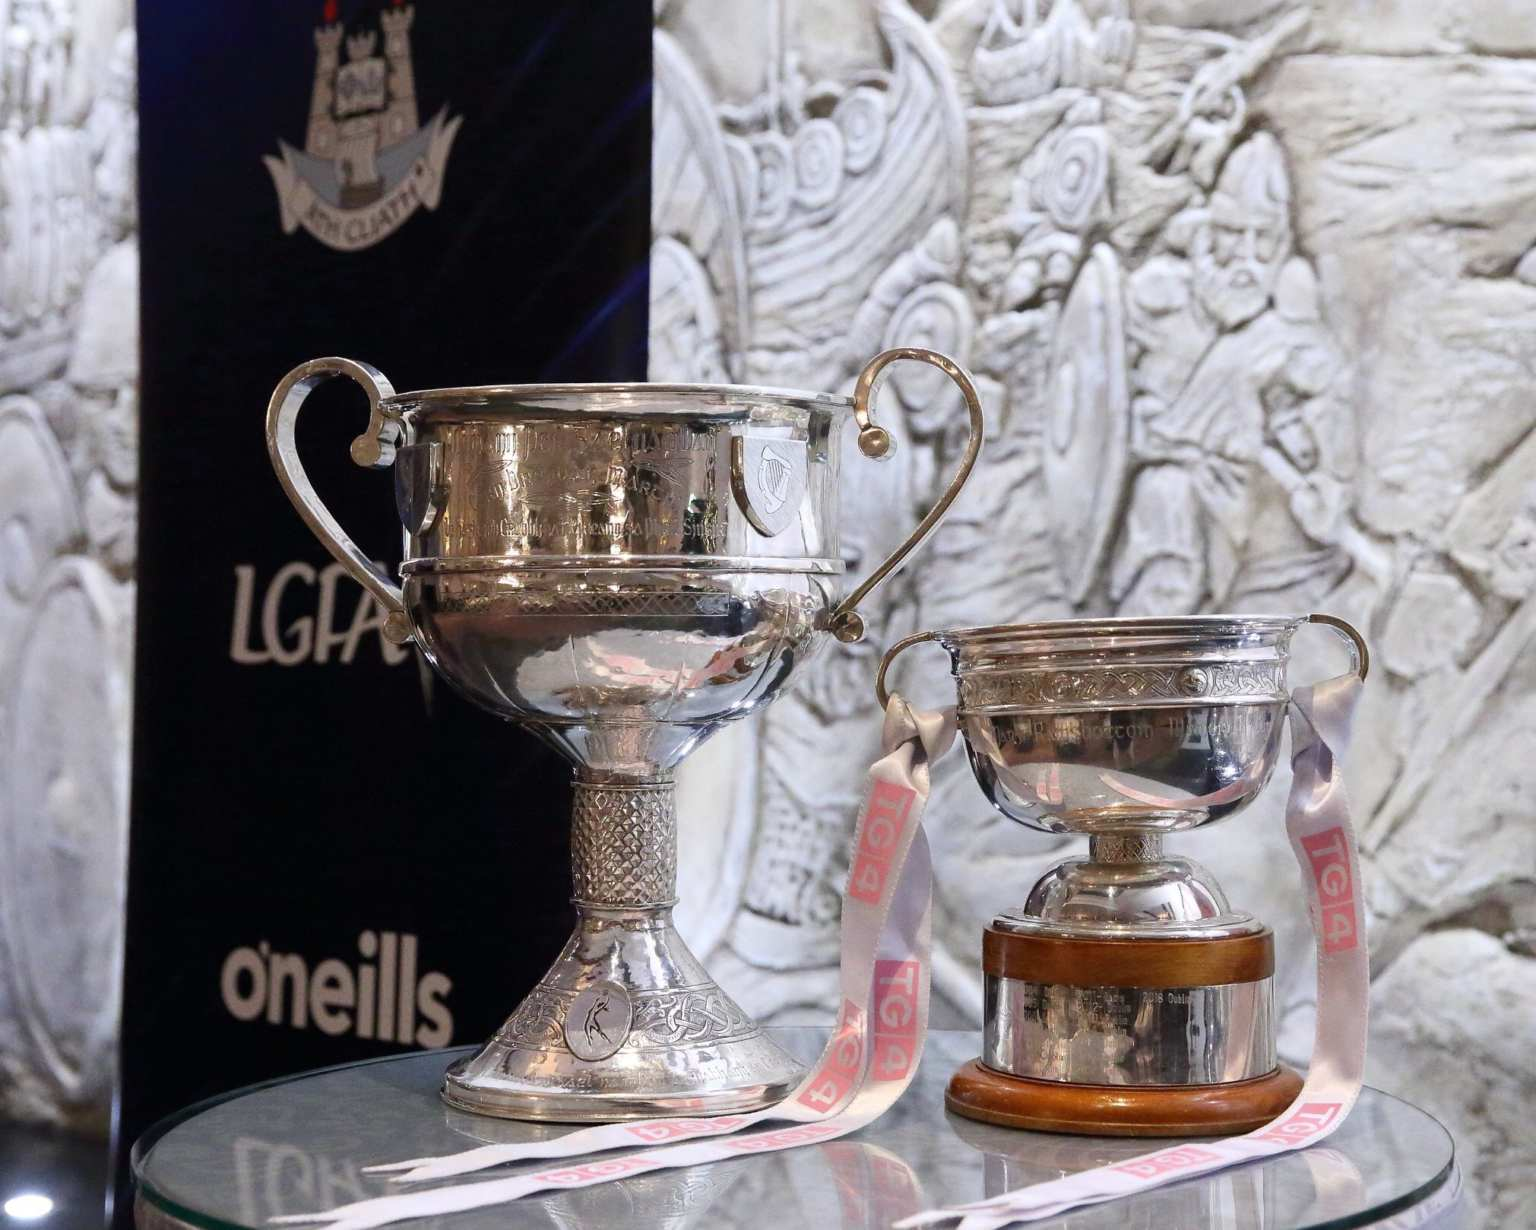 The All Ireland and Leinster ladies football trophy's on a table at the Dublin LGFA Awards night where it was announced Lauren Magee has been named Leinster Captain for the 2019 Interprovincial tournament